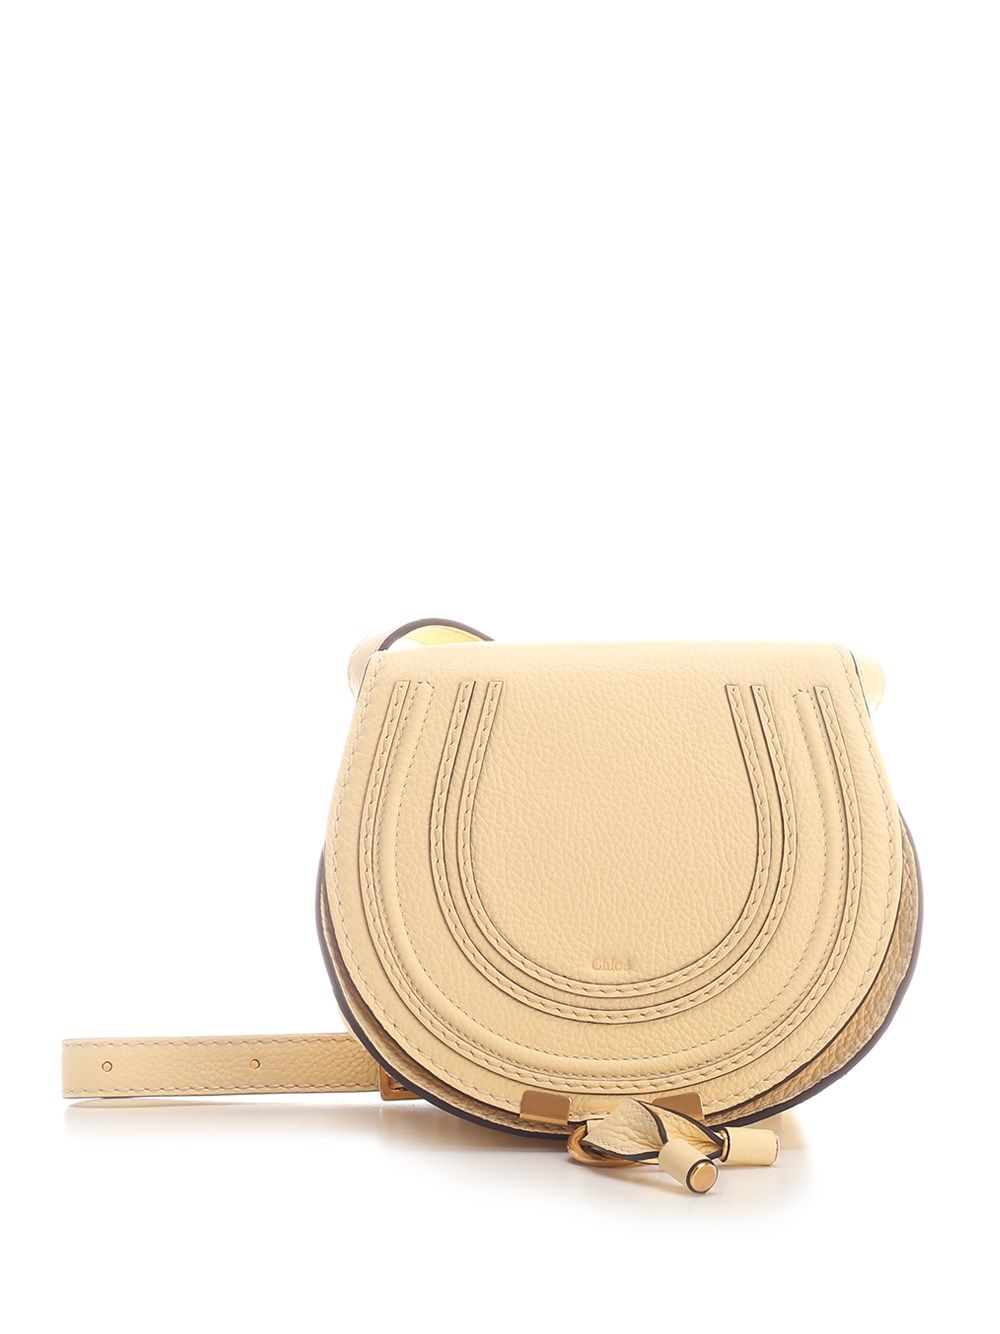 Chloé CHLO WOMEN'S CHC11SP580161752 YELLOW OTHER MATERIALS SHOULDER BAG